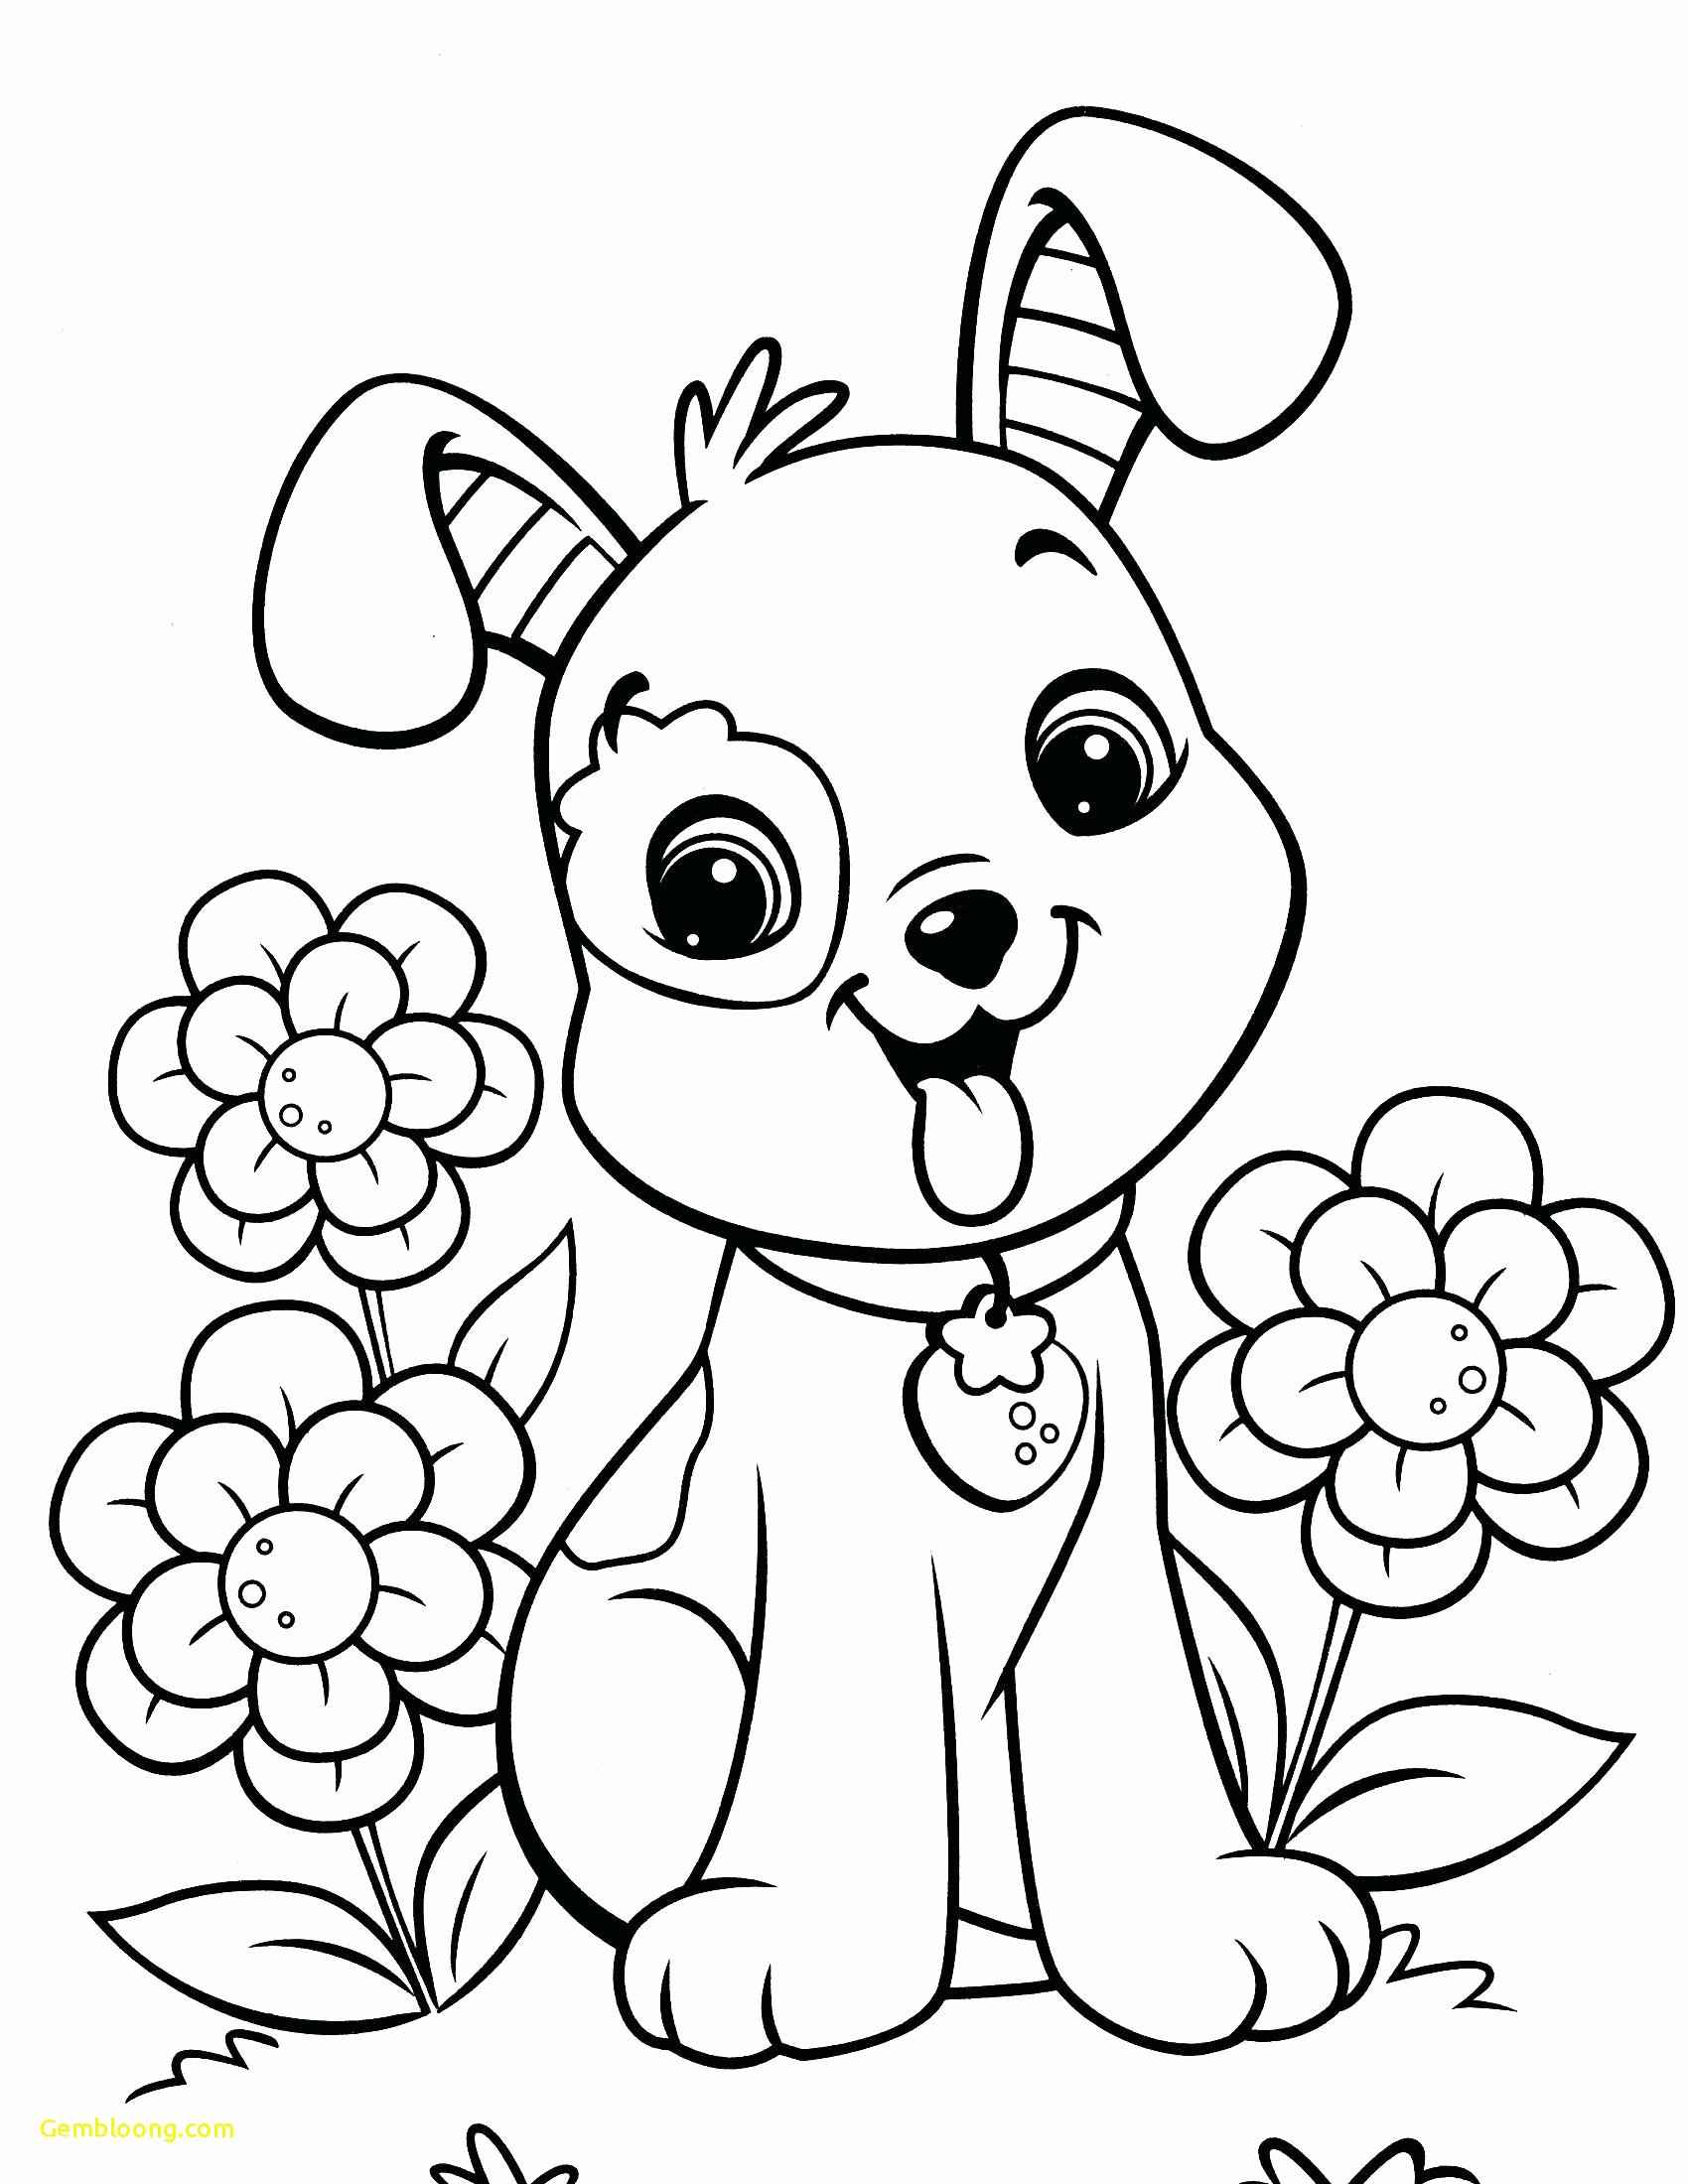 Free Coloring Worksheets for Preschoolers Printable Free Coloring Pages for Children – Haramiran